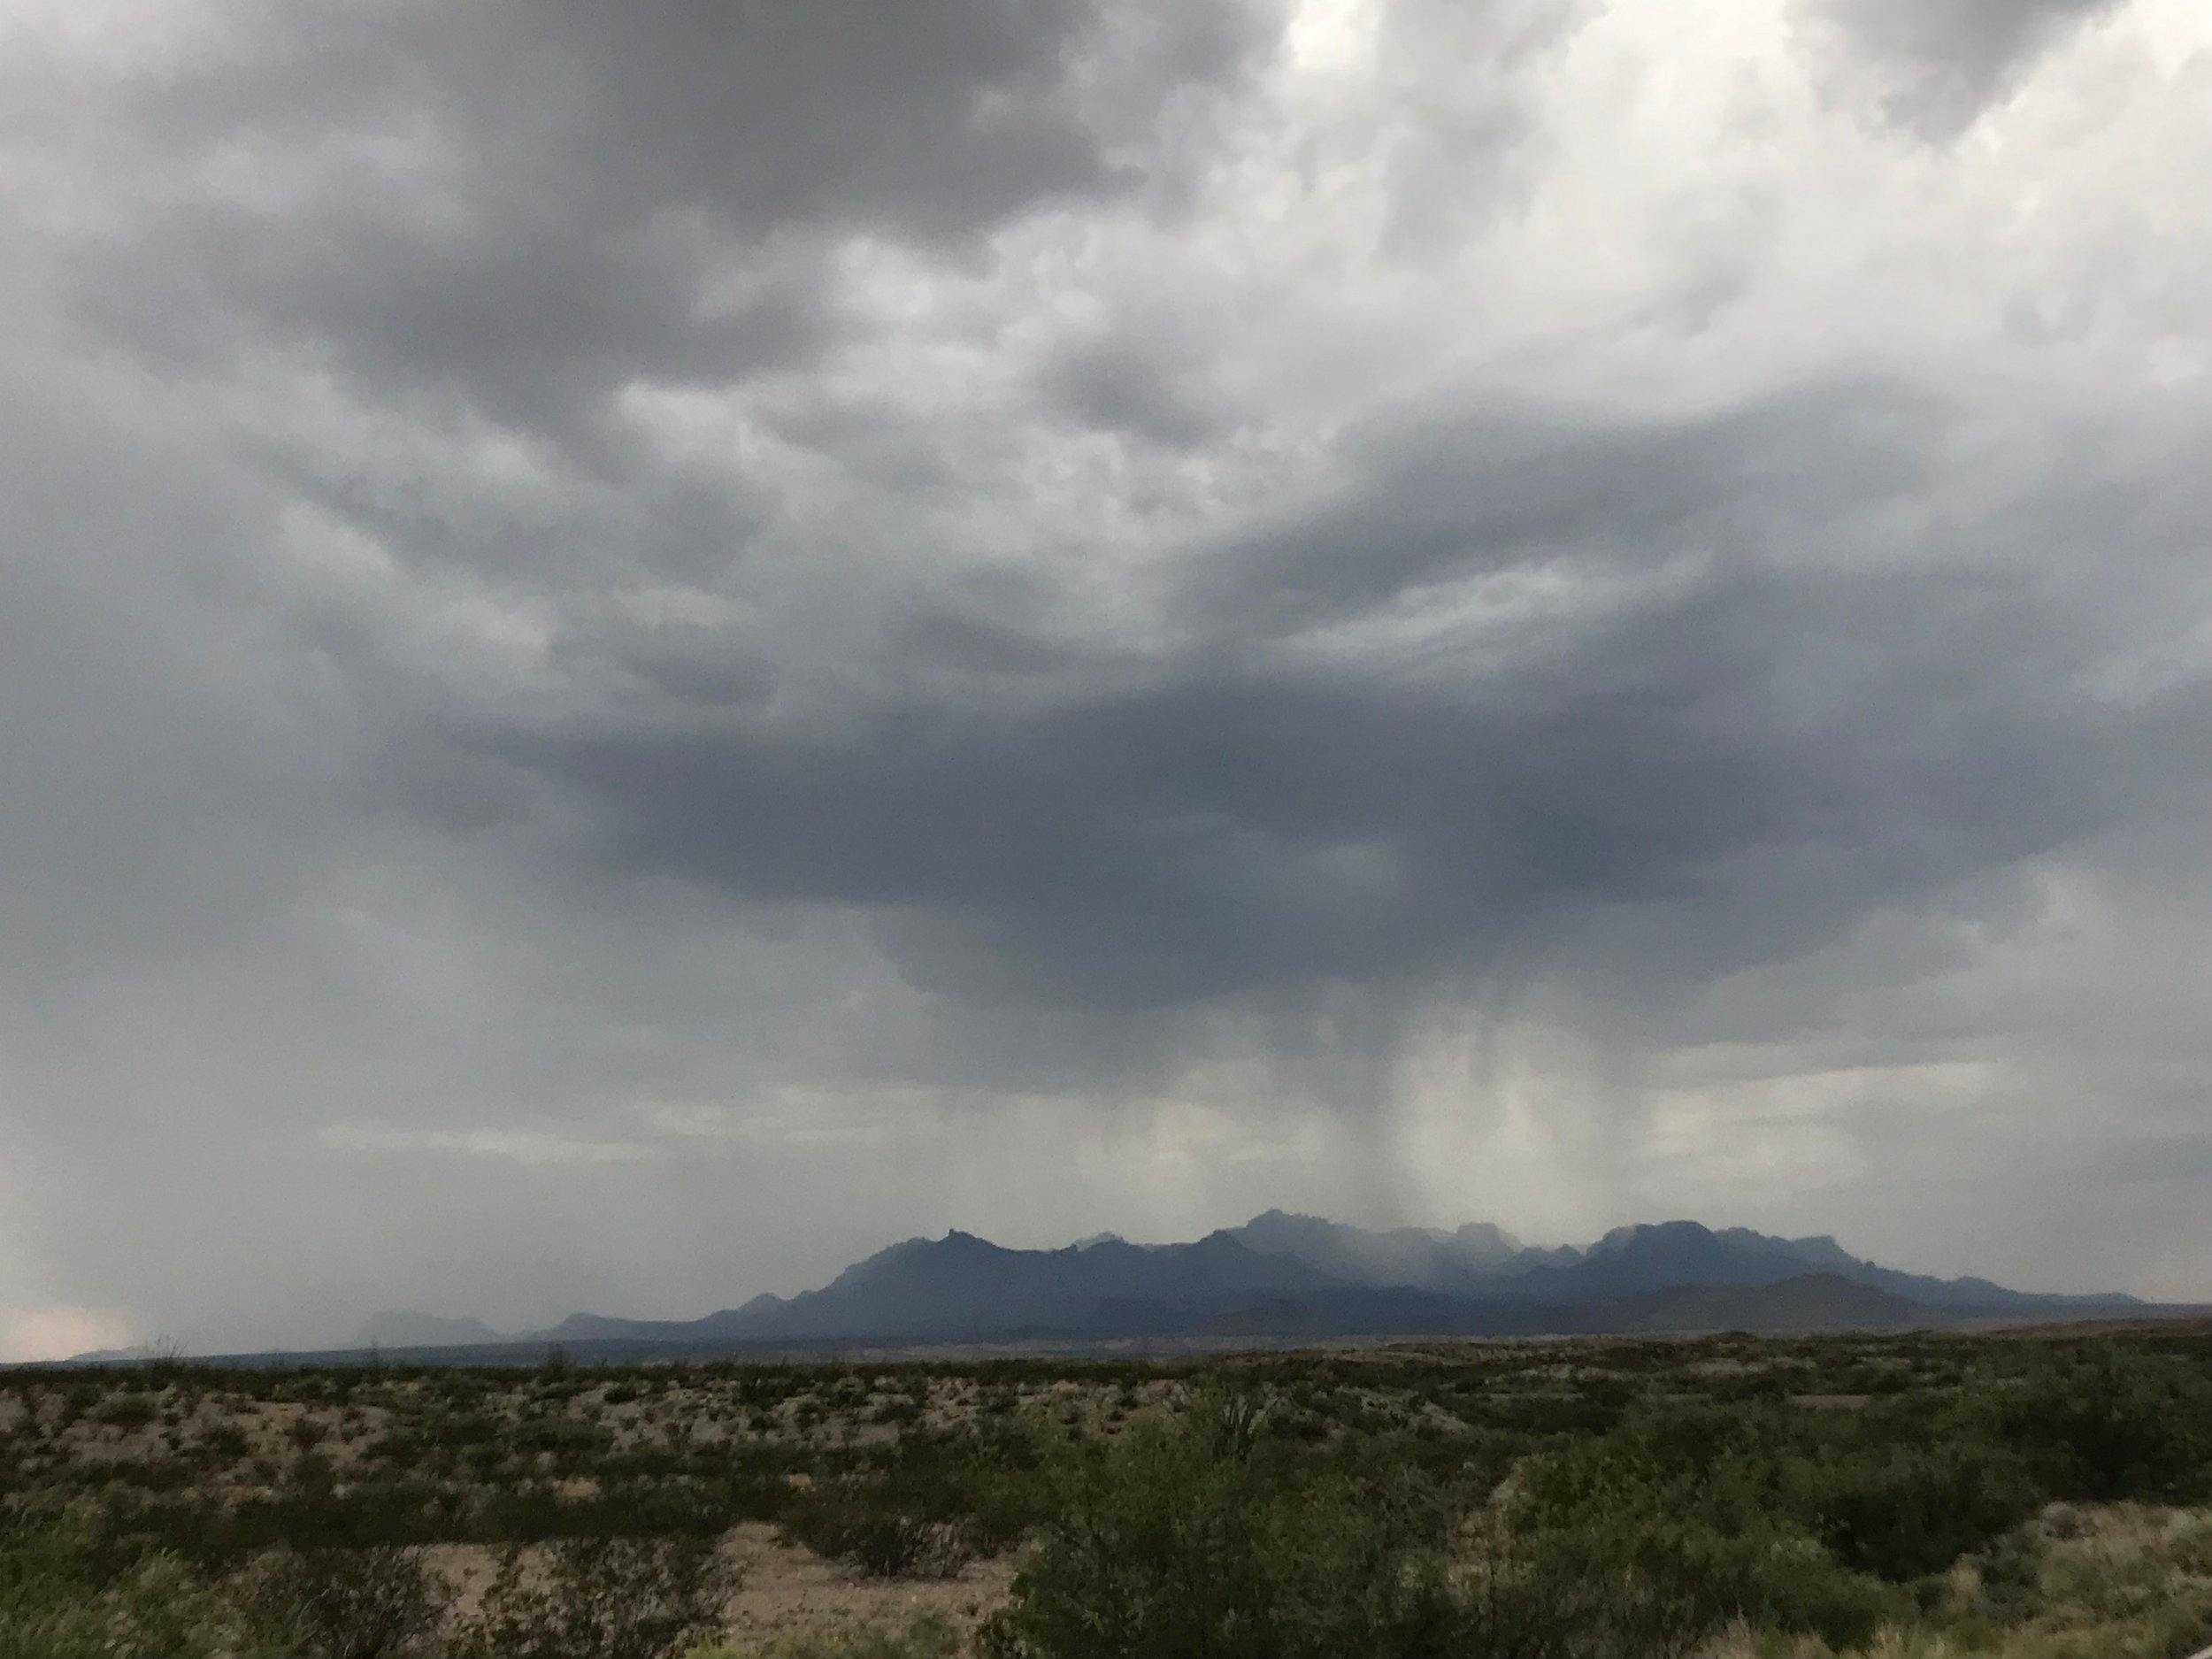 We were in Big Bend in June and it was rainy the entire time but one day. HOWEVER, the weather was a mild 68-70 degrees F.